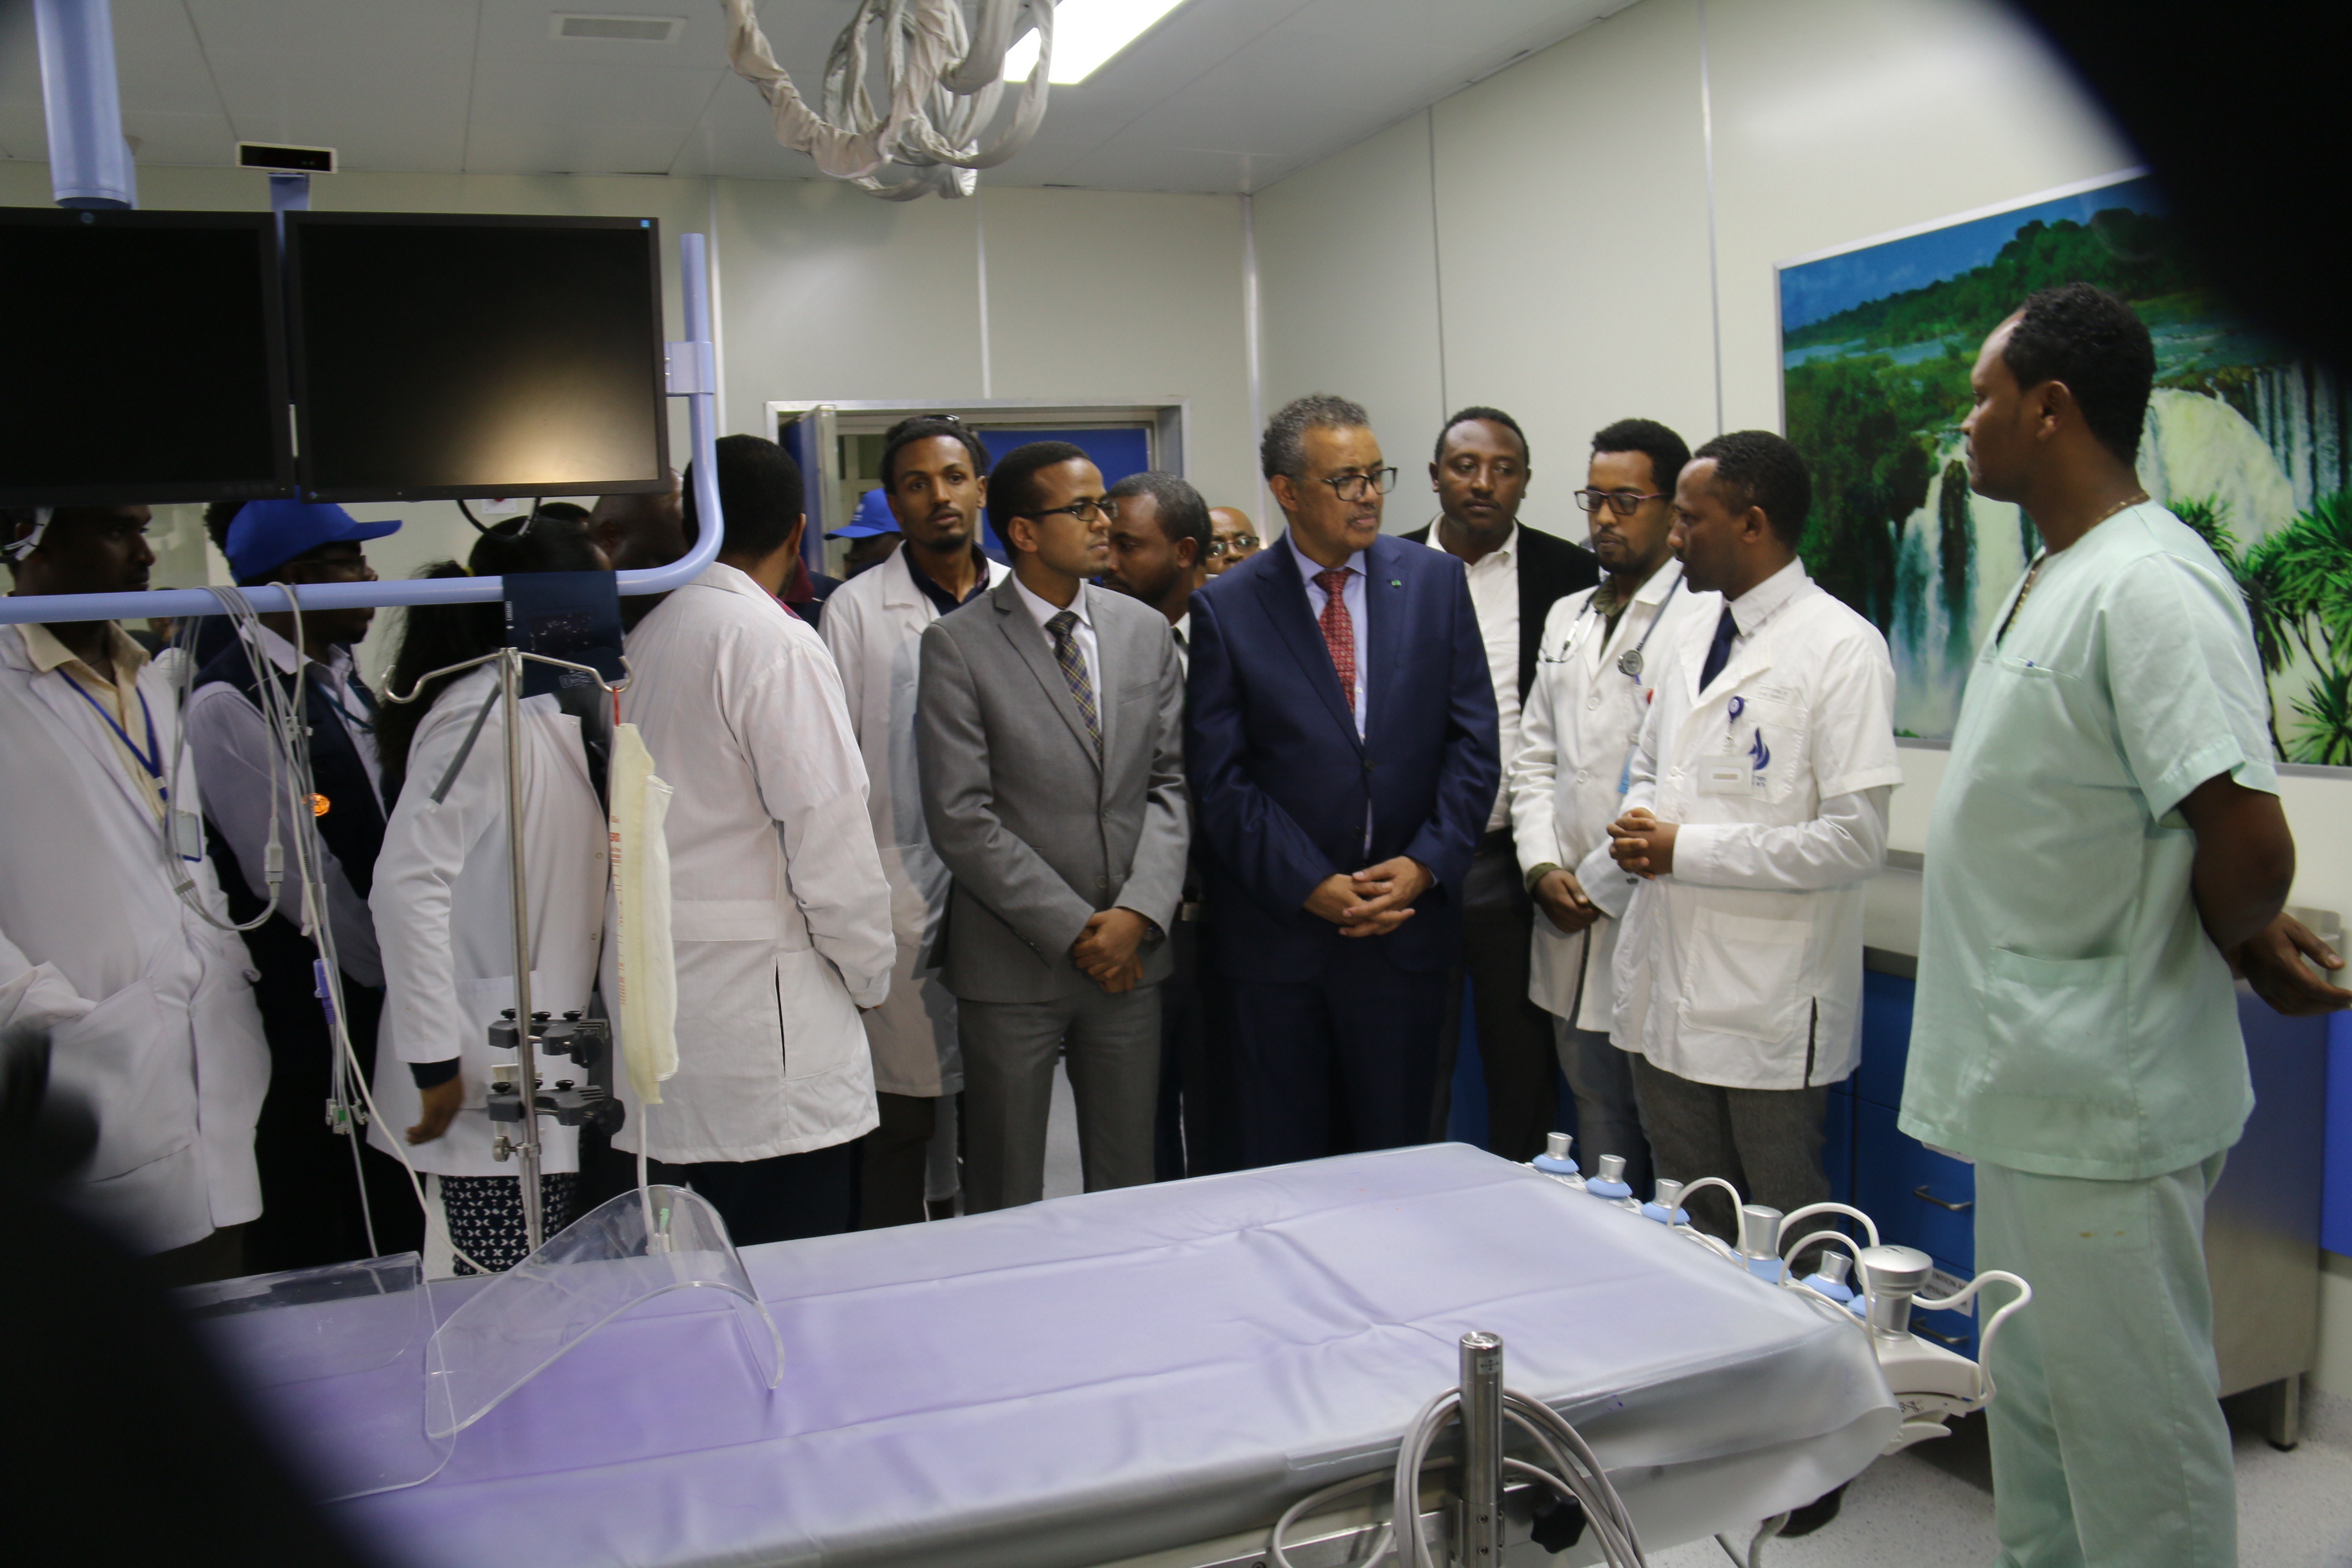 Dr tedros visiting the health facility